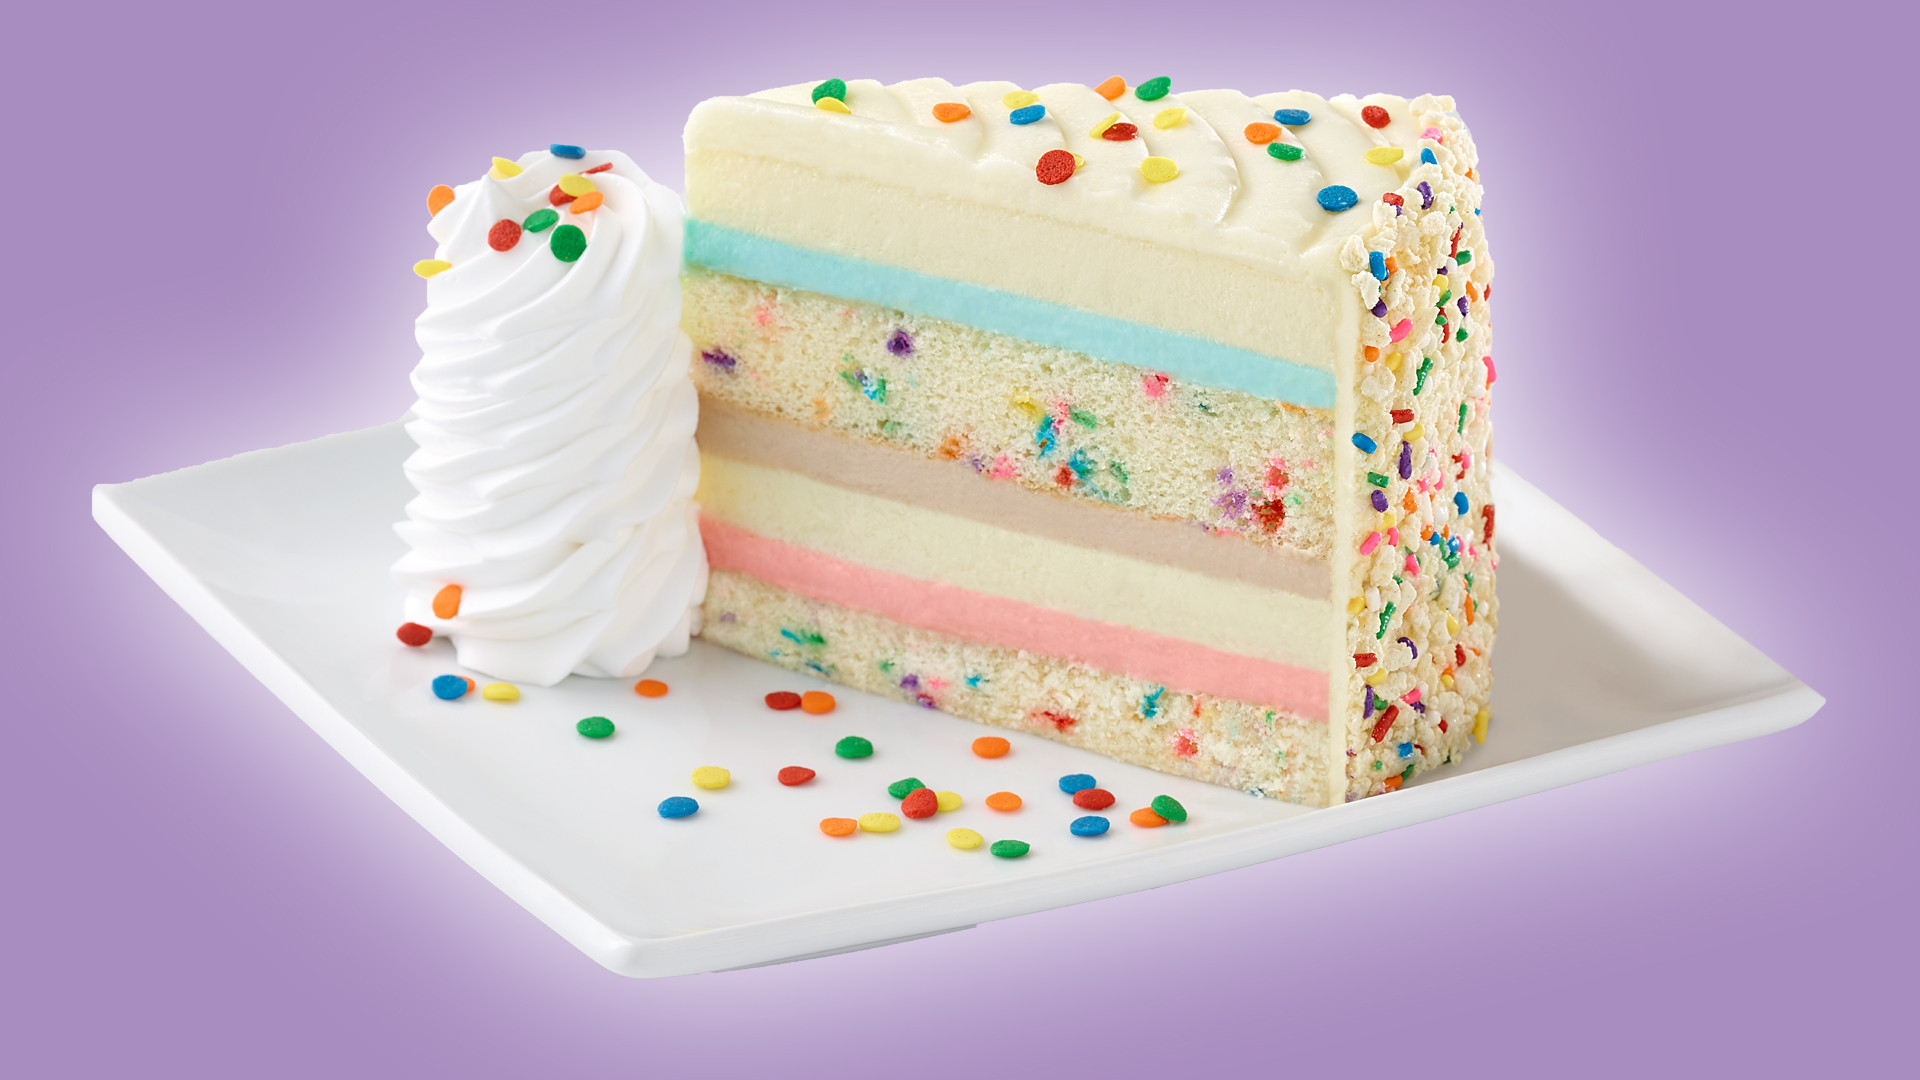 Cheesecake Factory Birthday Cake  The Cheesecake Factory s new flavor is Funfetti TODAY